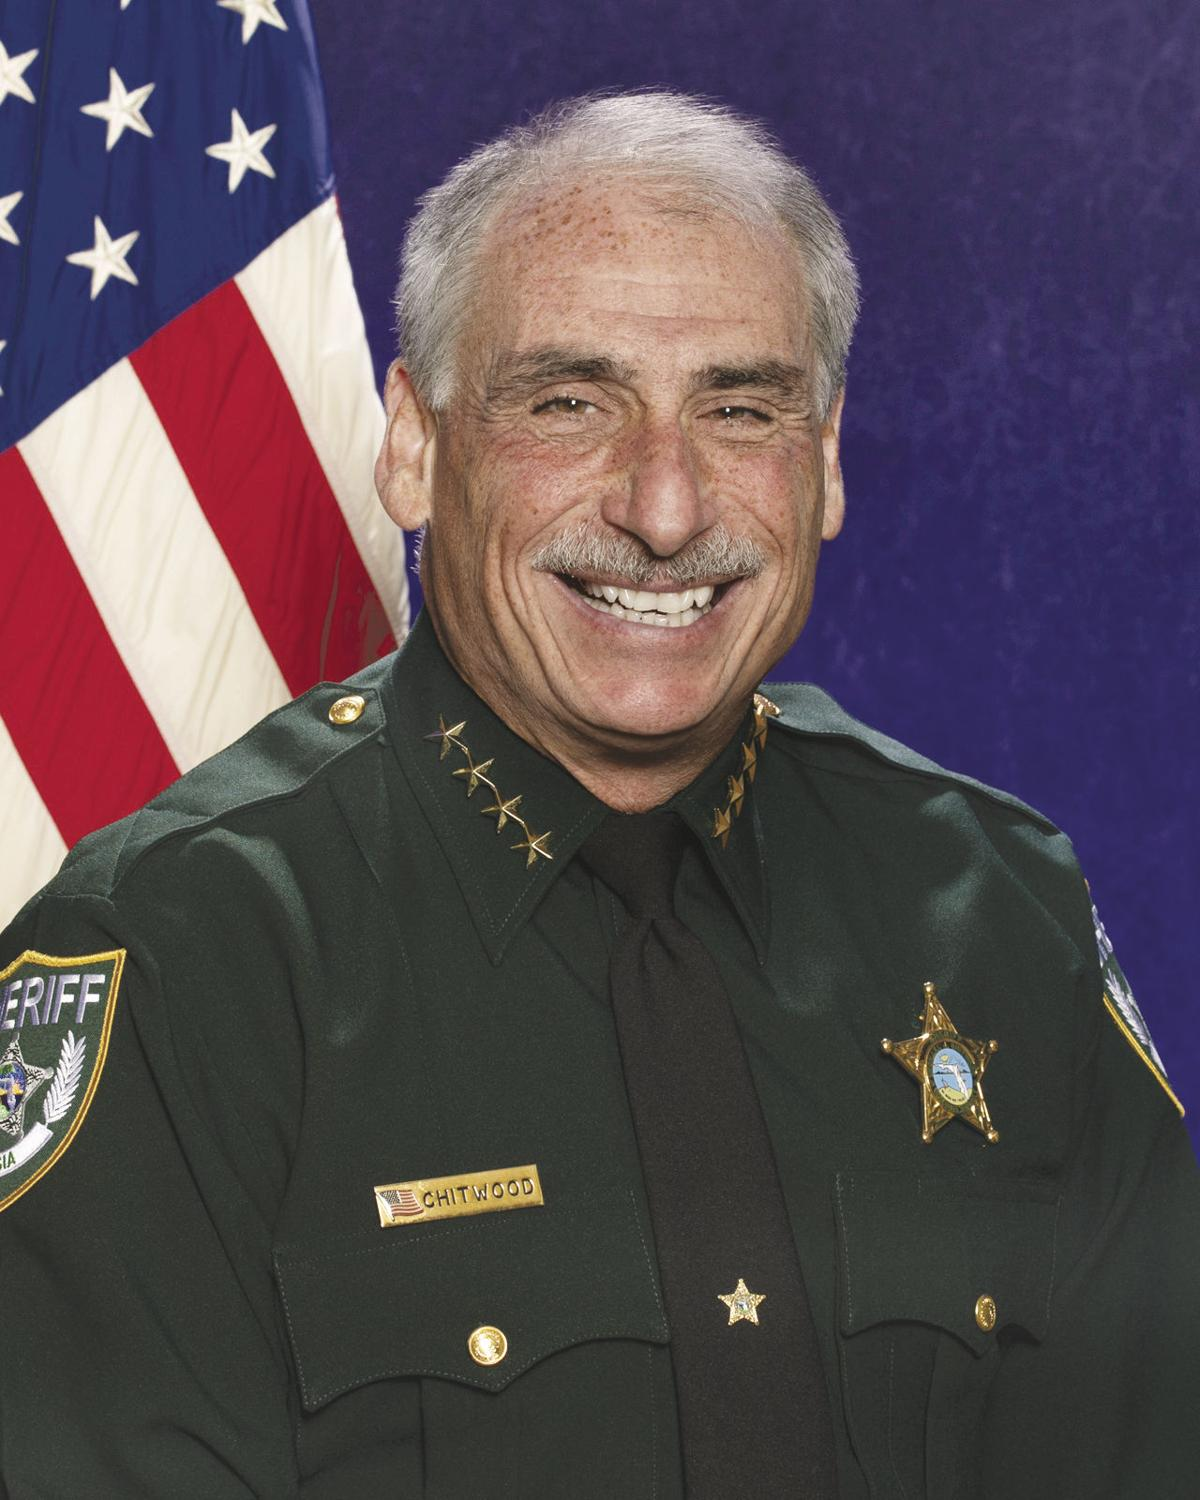 Sheriff Re-elected